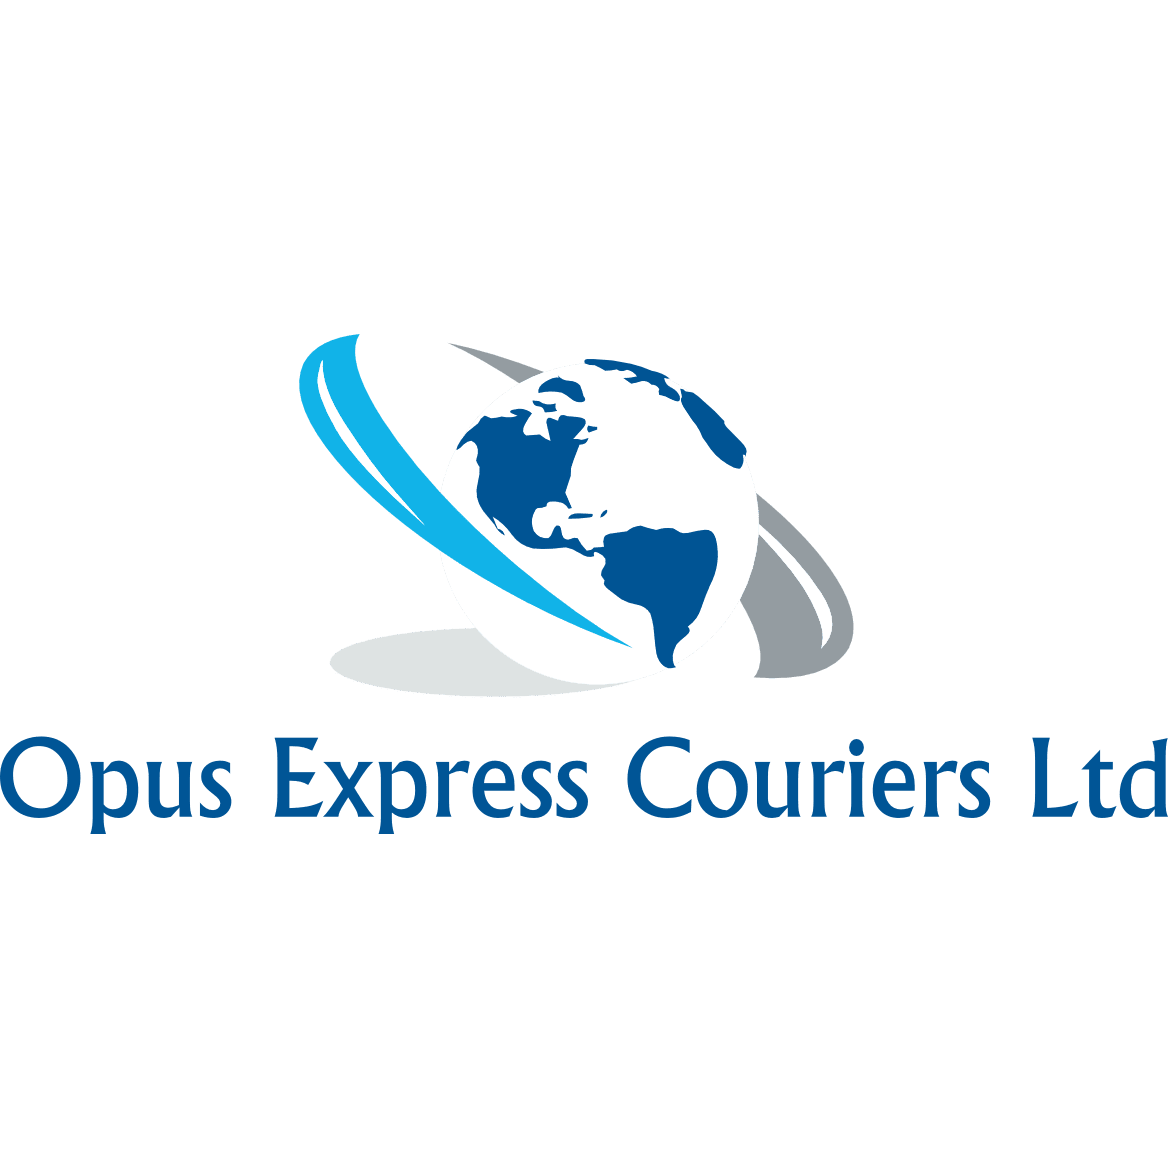 Opus Express Couriers Ltd - Liverpool, Merseyside L31 8BX - 01512 944327 | ShowMeLocal.com